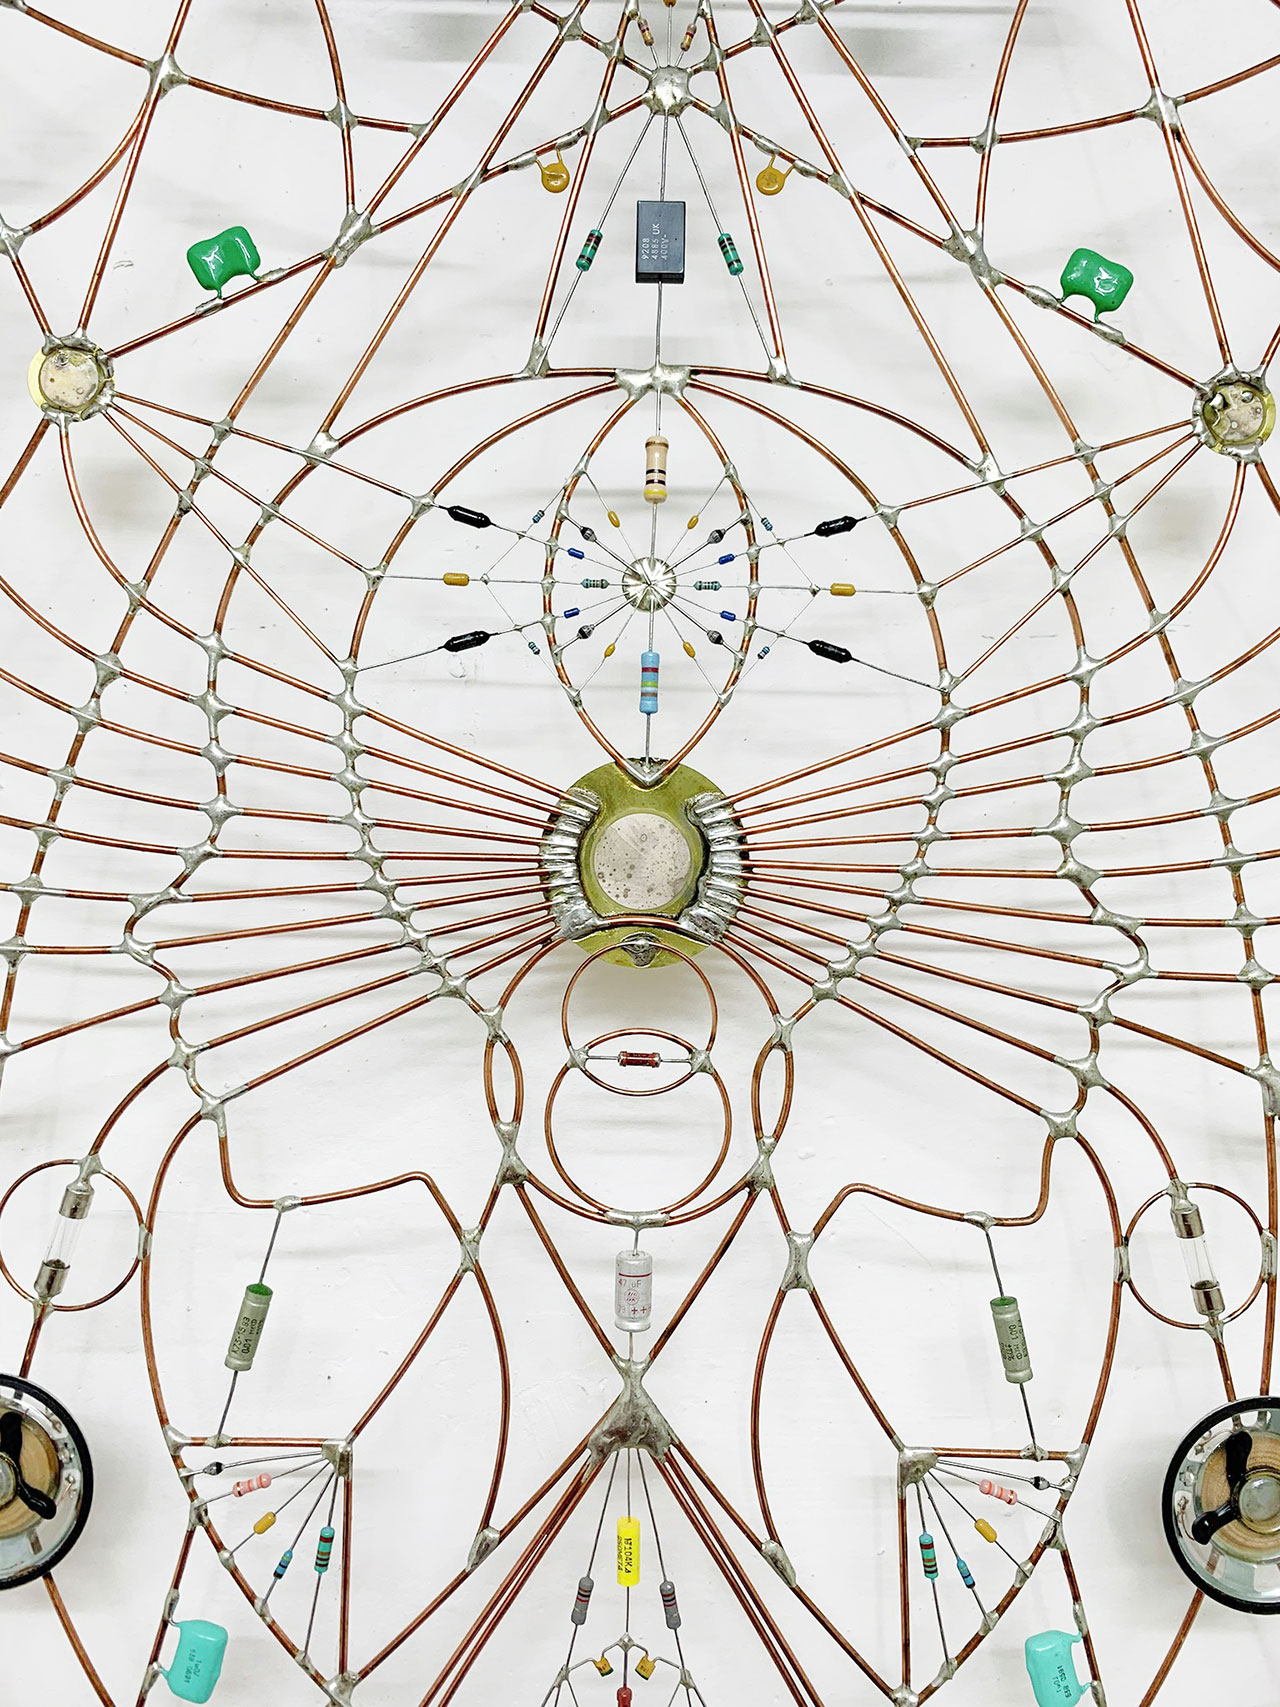 Technological mandala 91 - Come in alto così in basso (close up), 2016. Stainless steel bed frame, springs, Copper wires, electronic components, microchip, speaker, varnish, 195x82x4 cm | 76¾x32¼x1½ inches. Courtesy: The Flat – Massimo Carasi. Photo by The Flat.